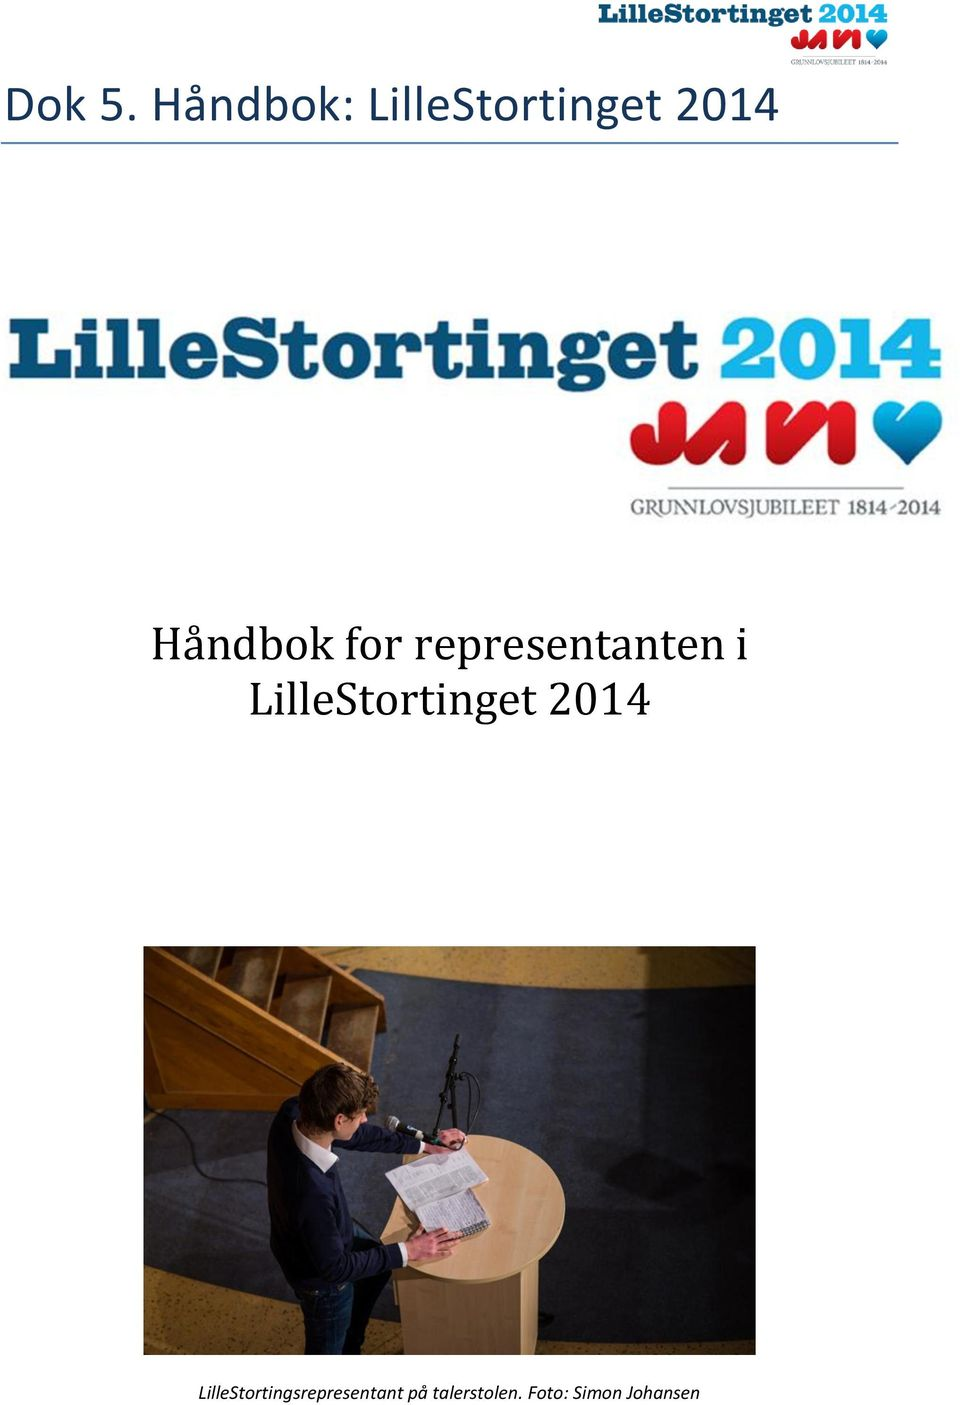 for representanten i LilleStortinget